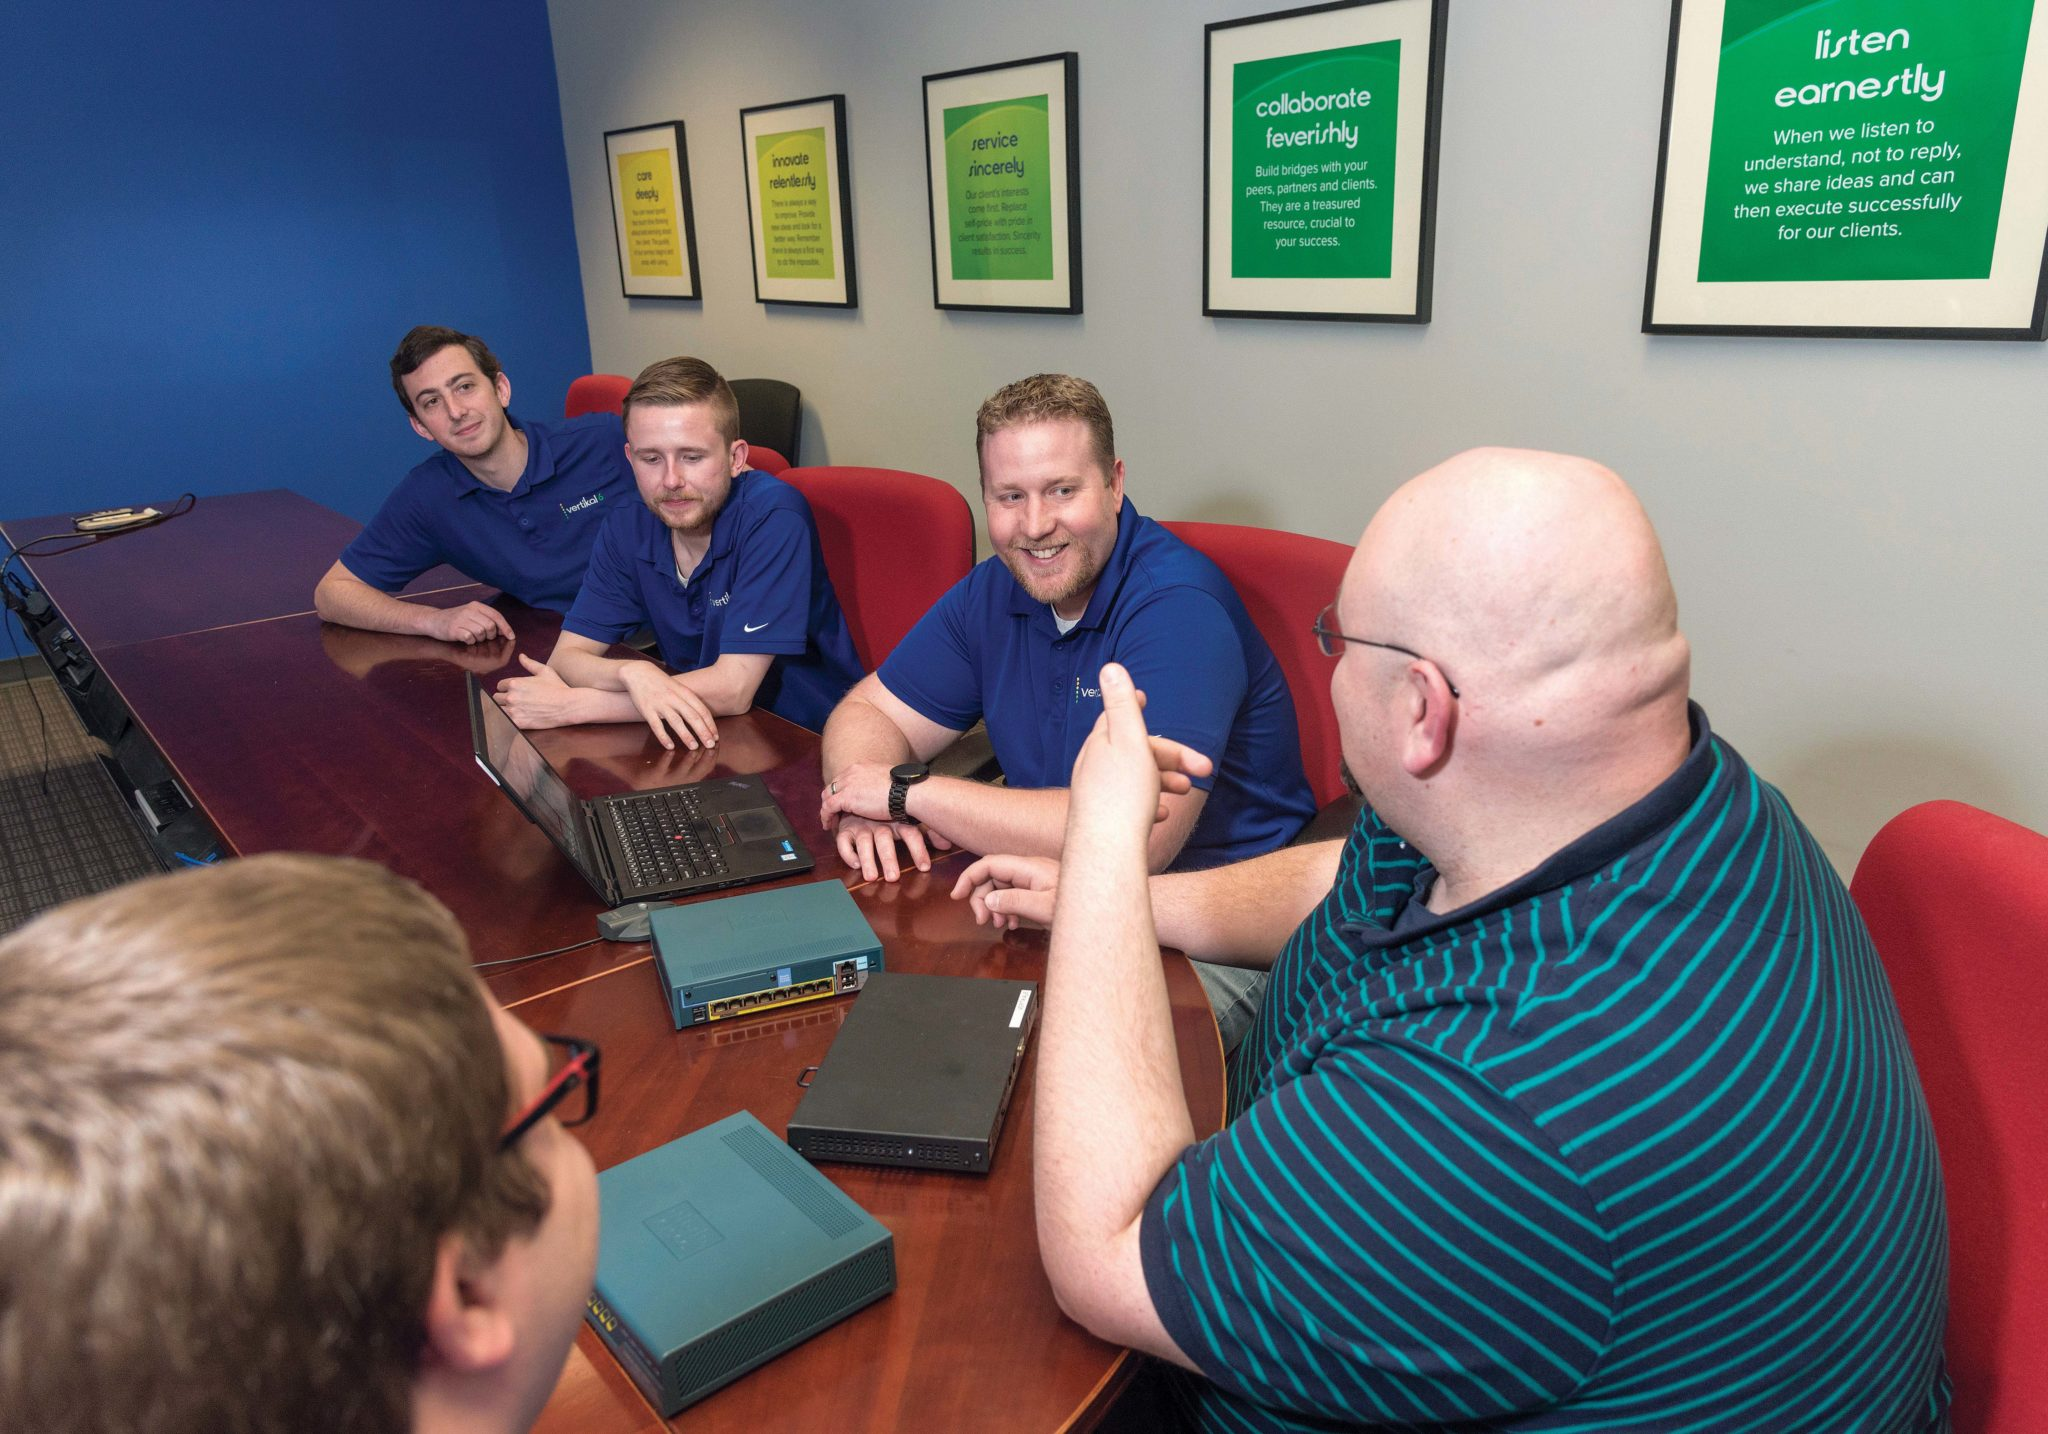 Strong staff: Vertikal6 staff in a network design meeting. From left, in background clockwise, James Green, systems engineer; Jonathan Essex, engineering manager; Drew Hill, field service engineer; Joe Lefrancois, senior network engineer; and Dean Gerjets, dedicated service engineer. / PBN PHOTO/MICHAEL SALERNO